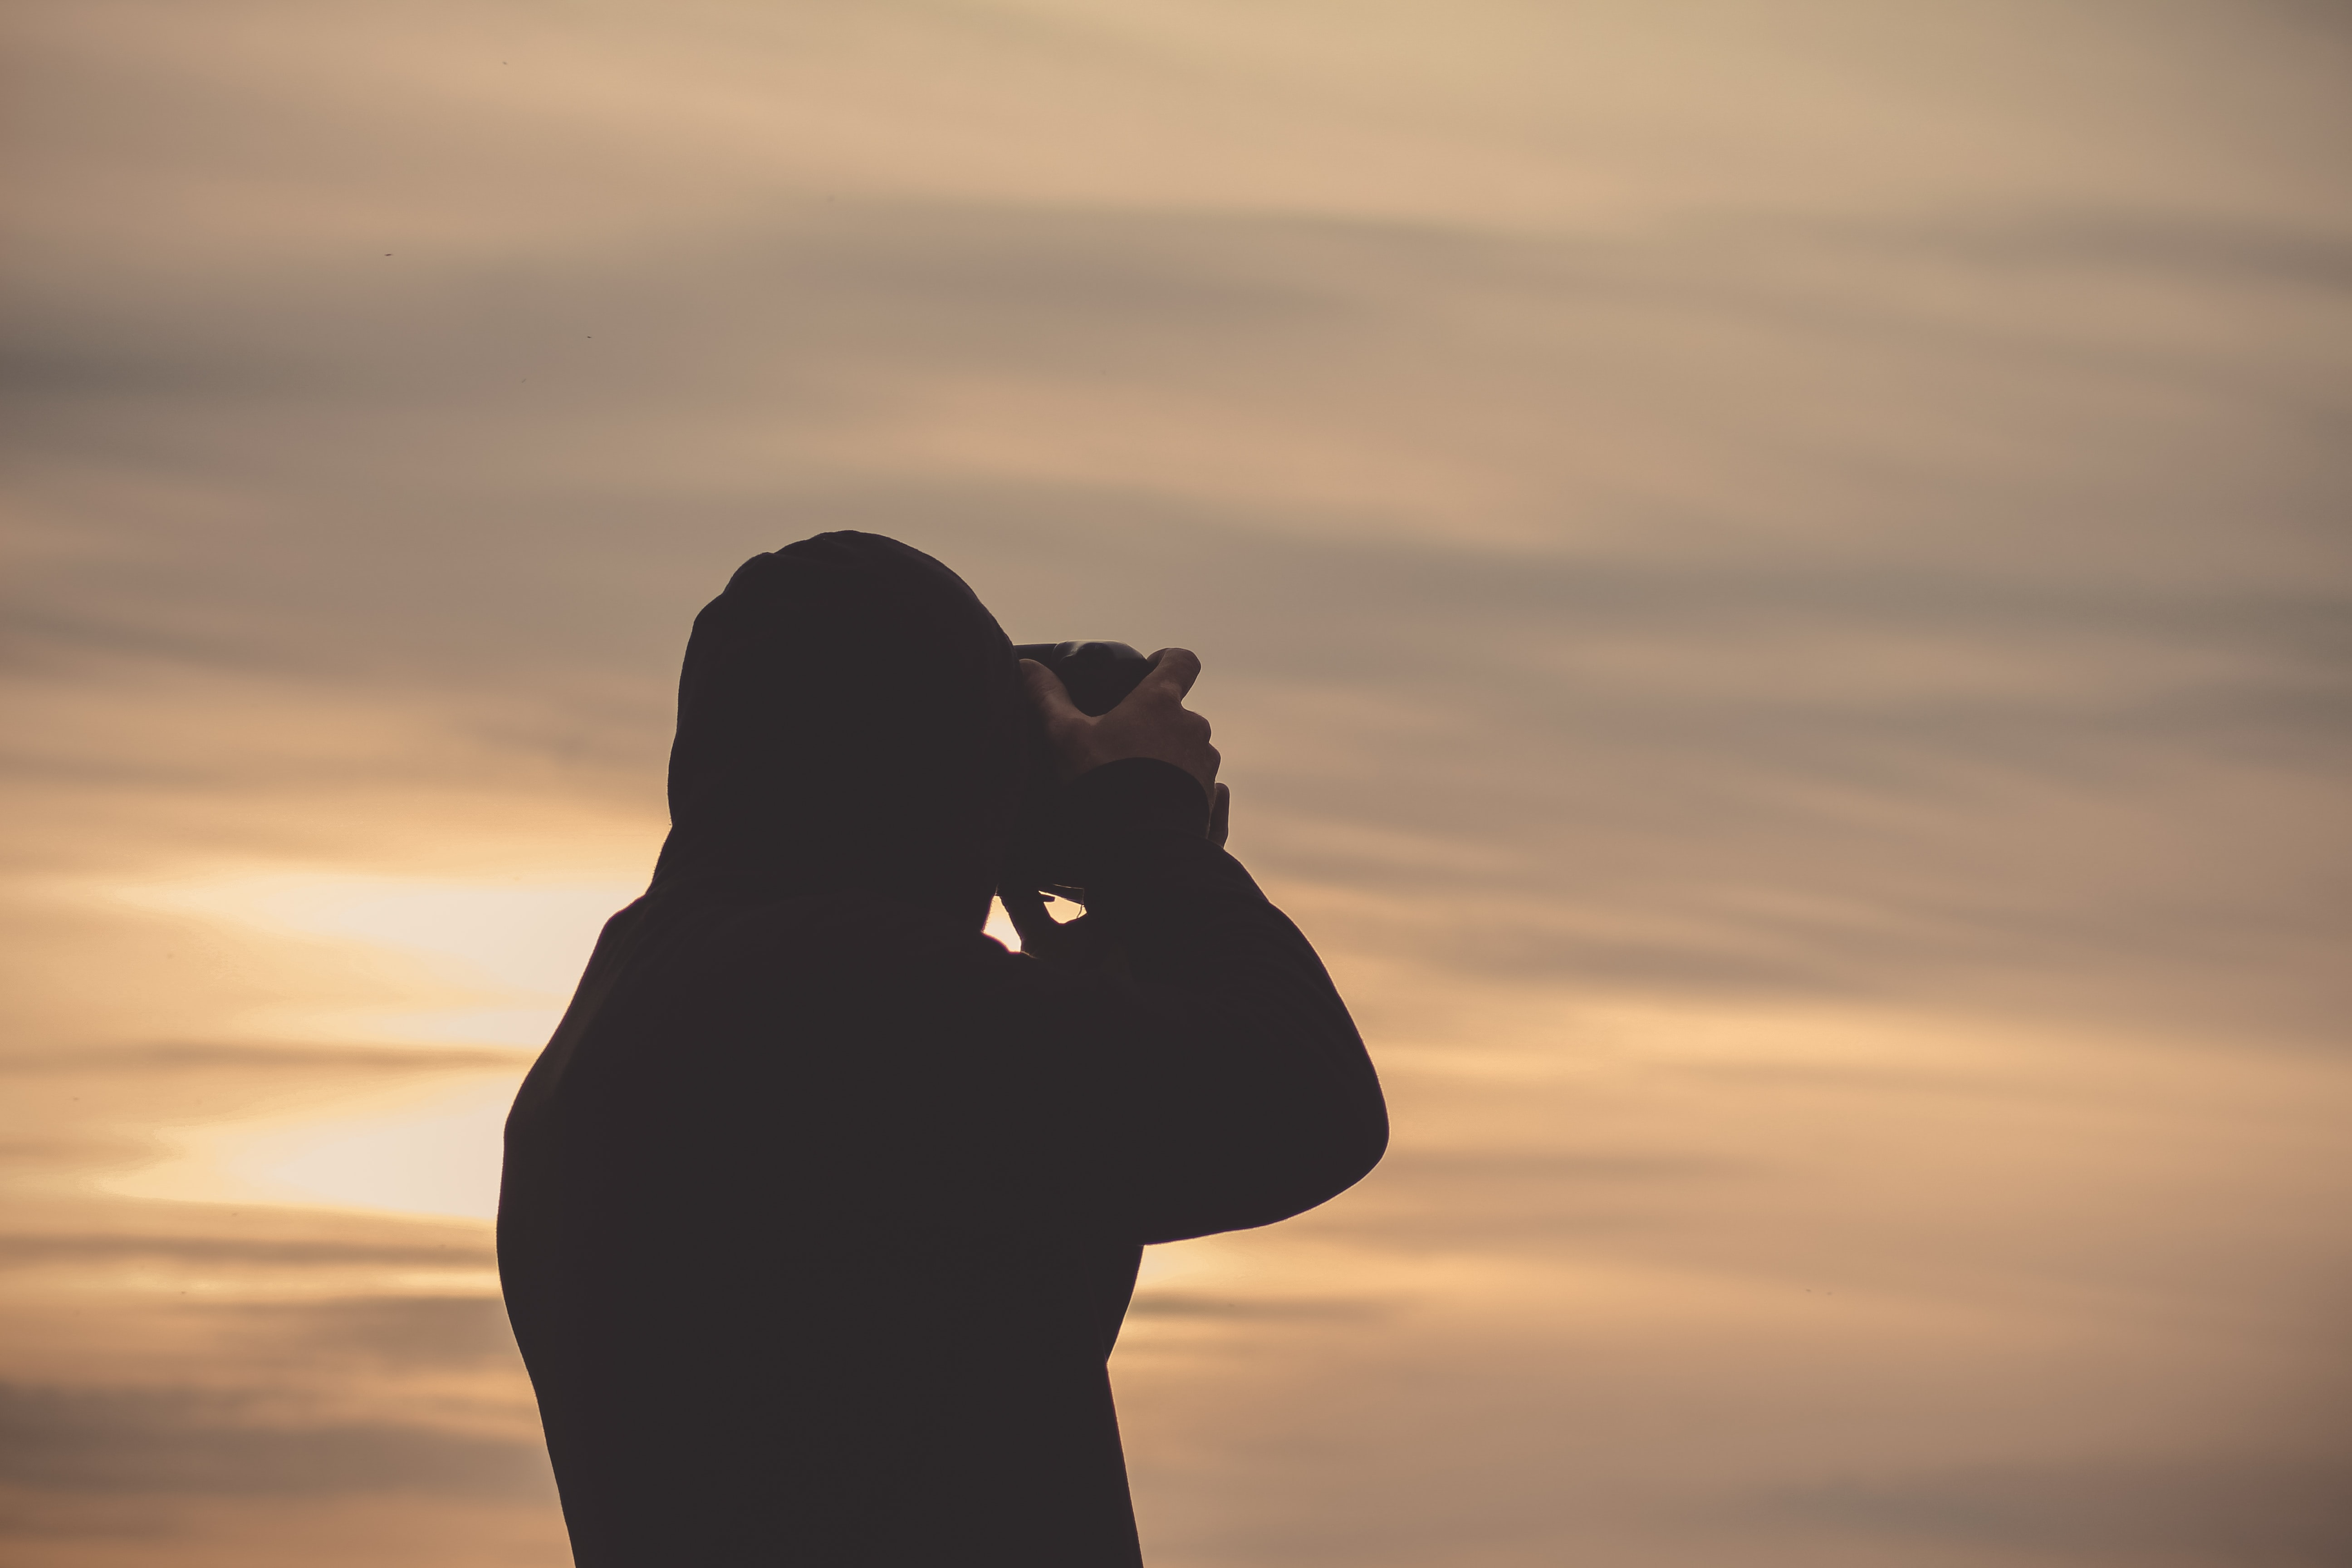 A silhouette of a person taking a photo of the sky